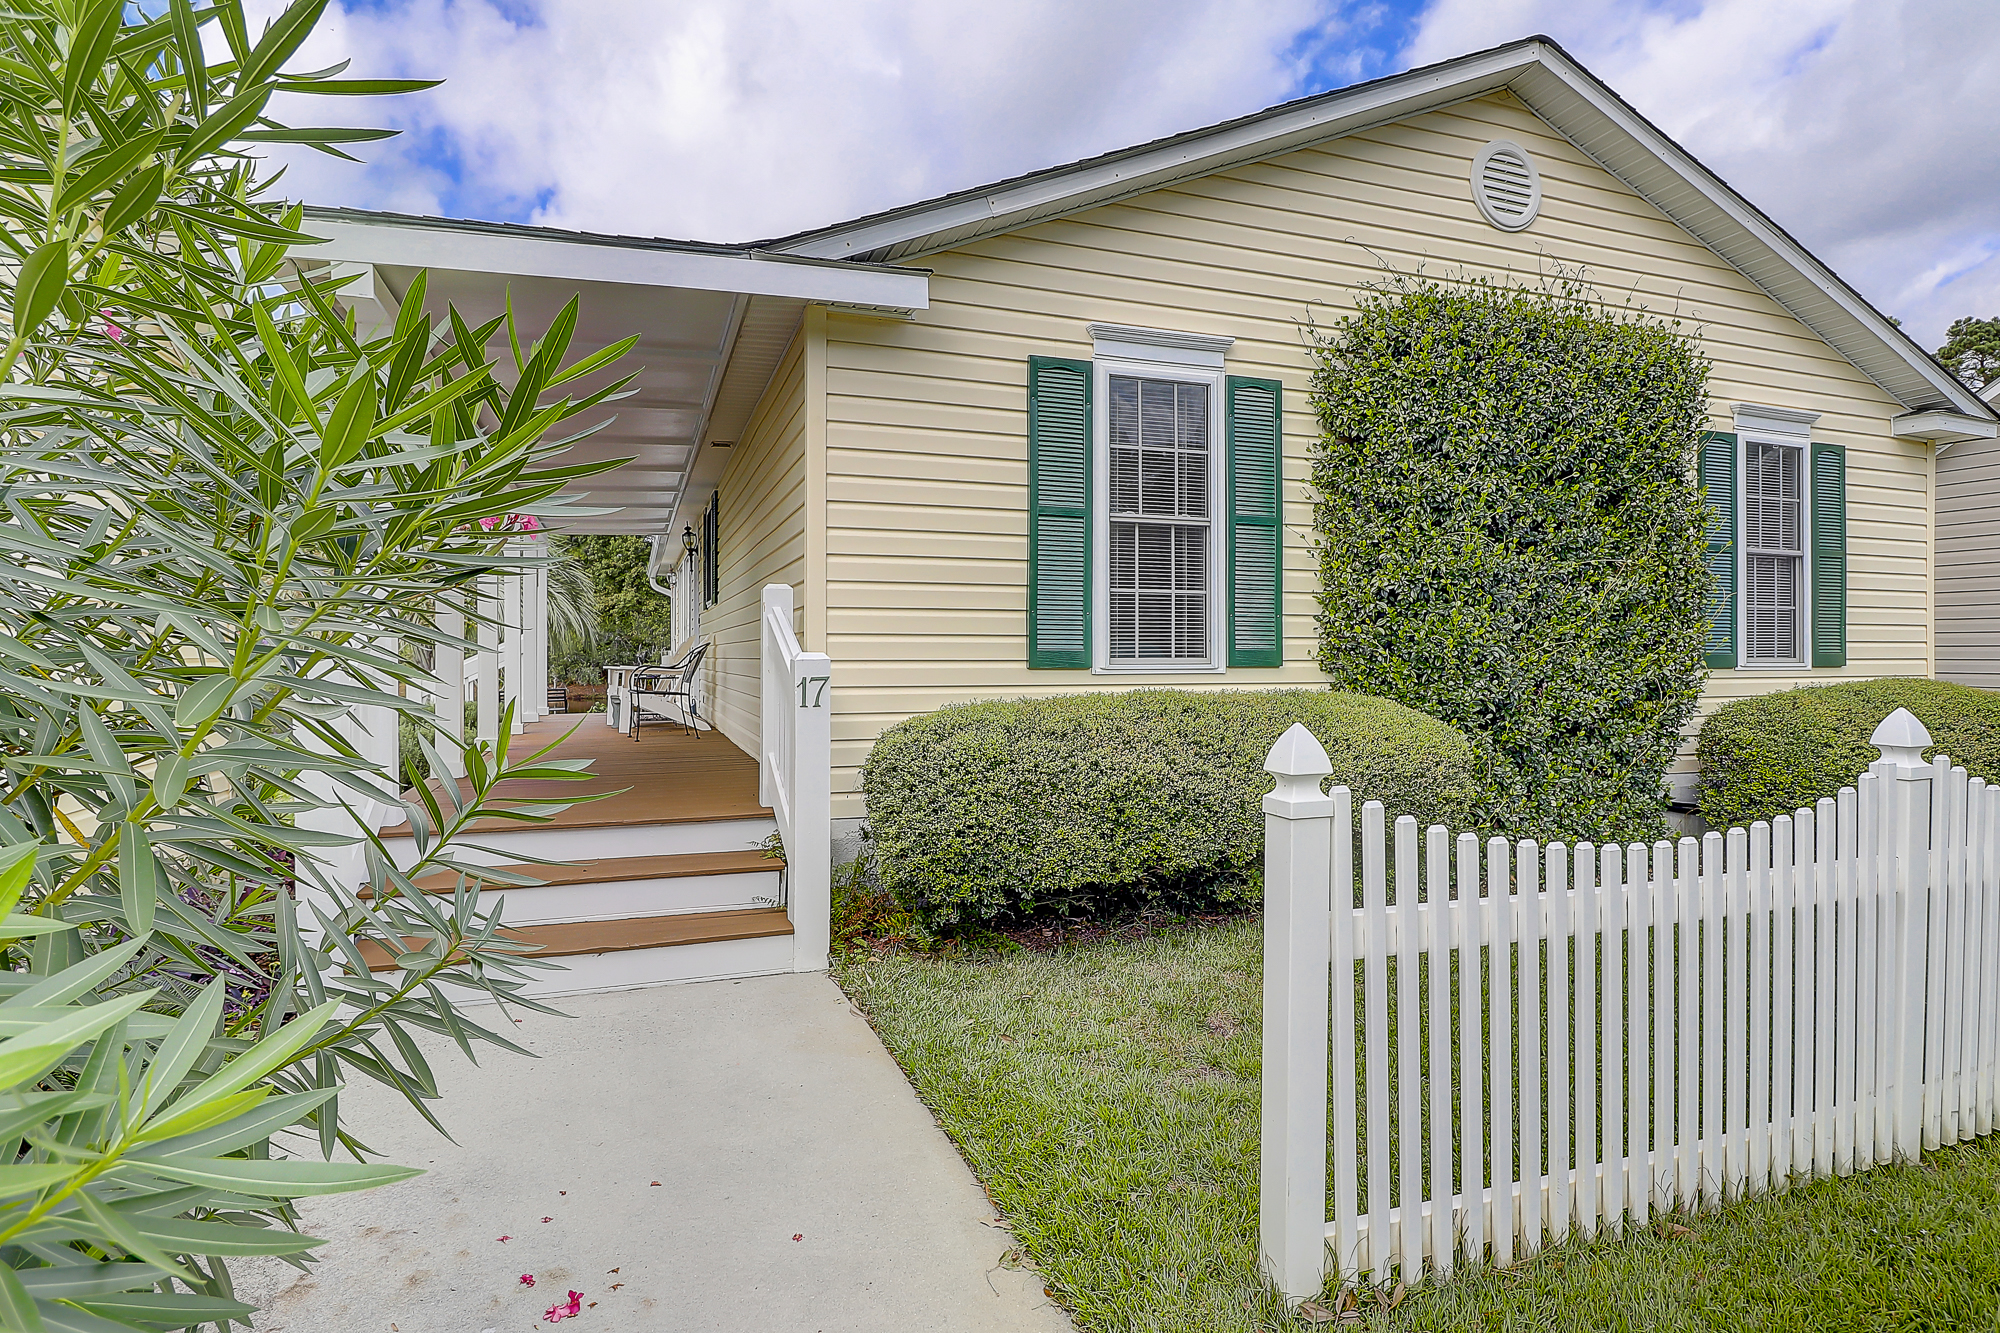 Southern Coastal Home with a Picket Fence For Sale - Sawmill Forest